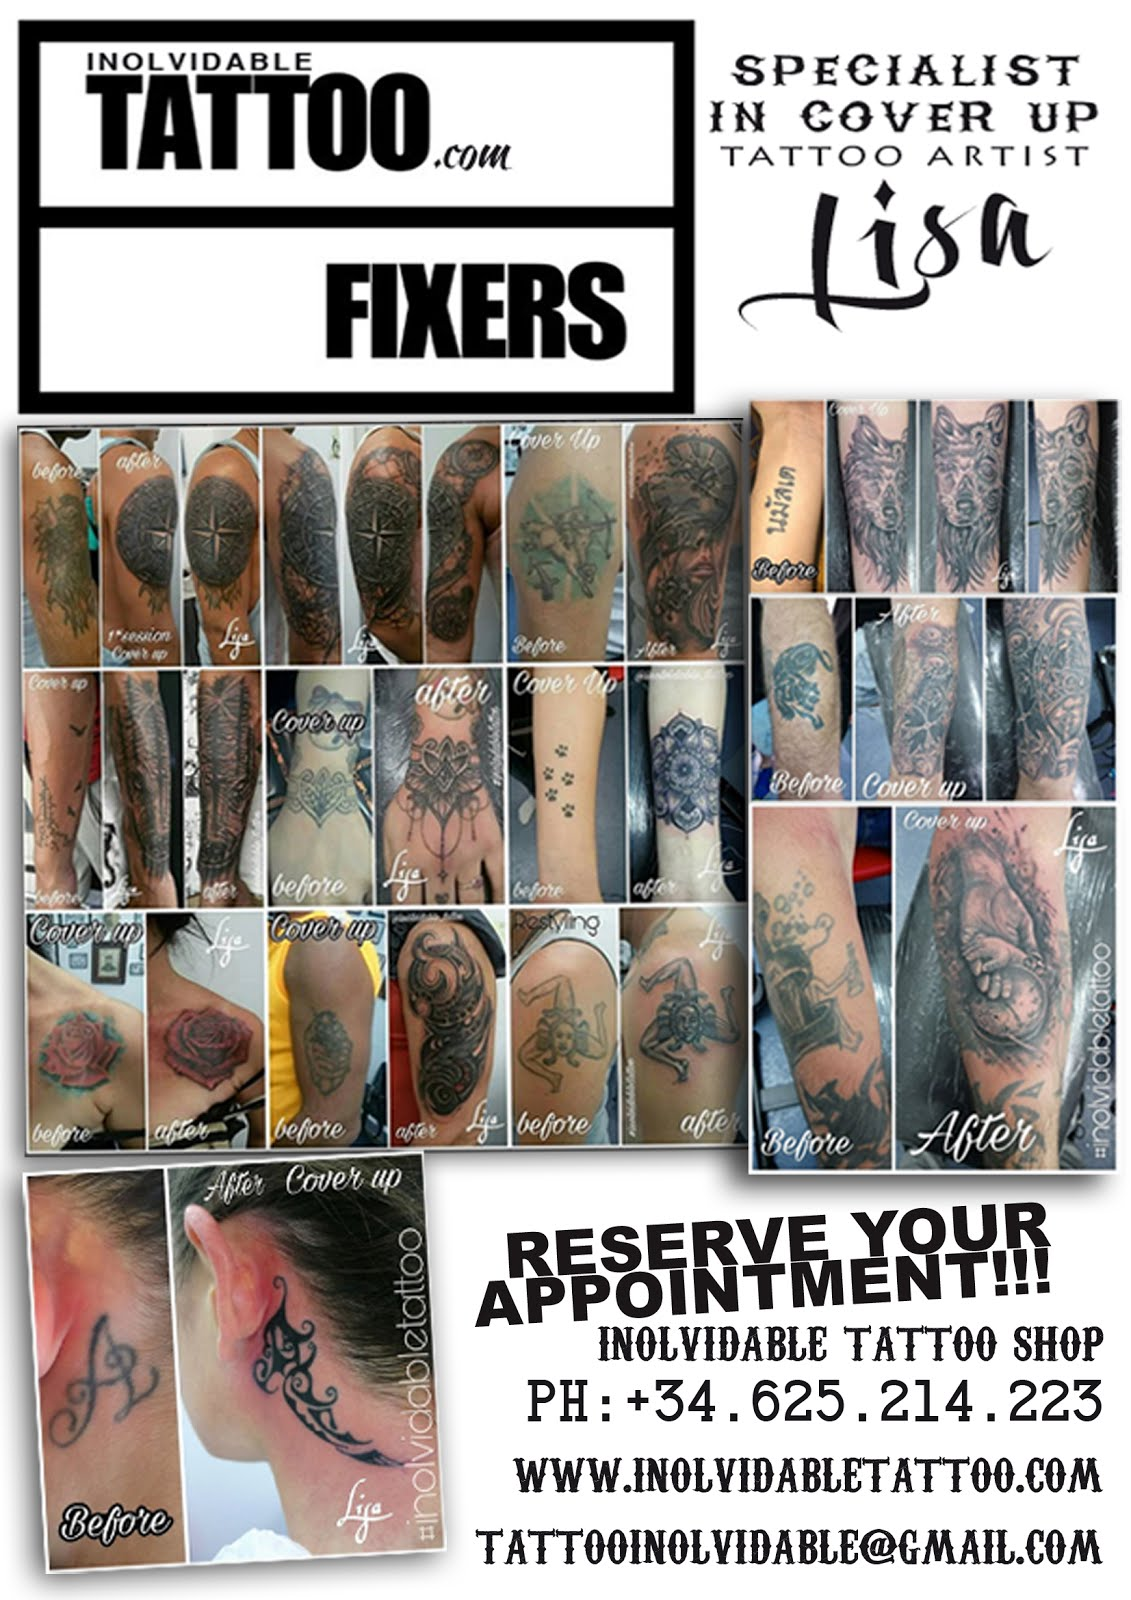 ...inolvidable tattoo fixer in Lloret De Mar...